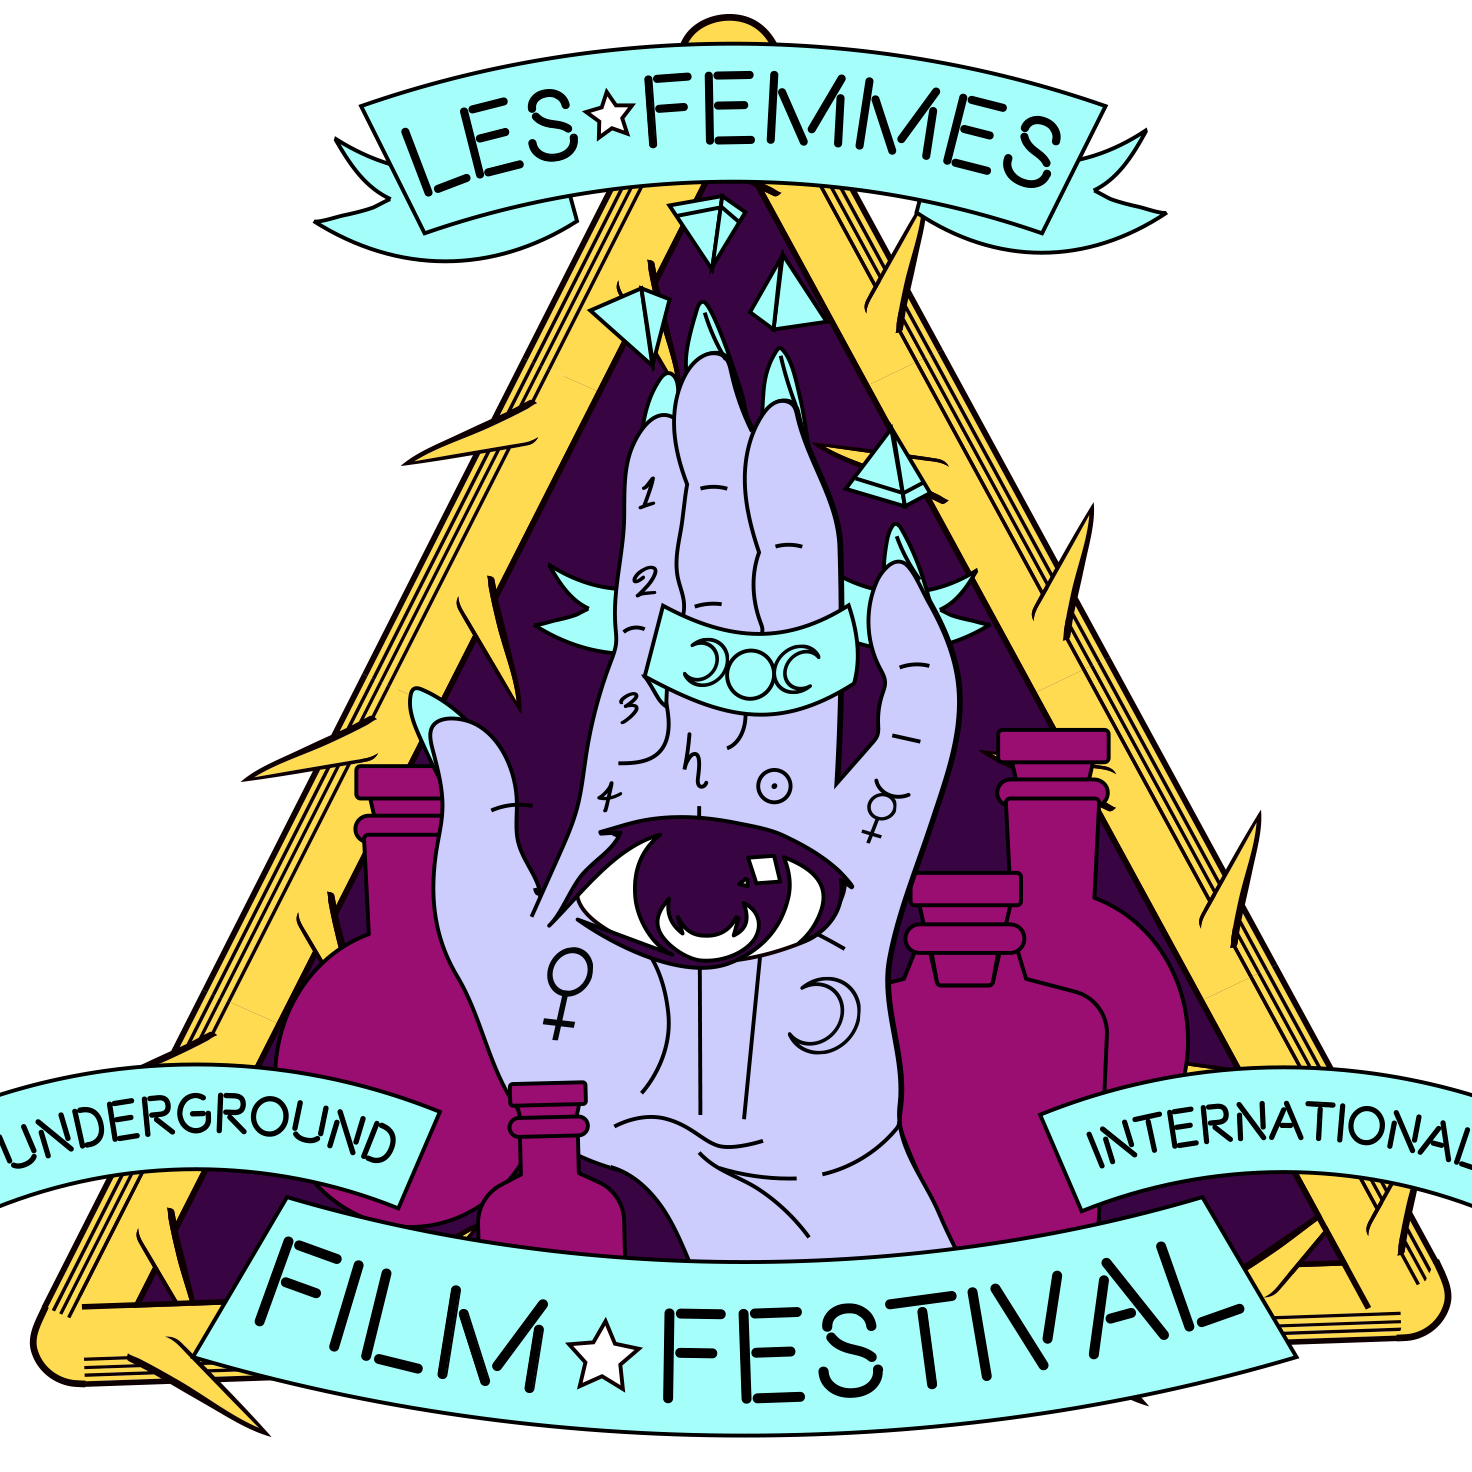 Les Femmes Underground International Film Festival!